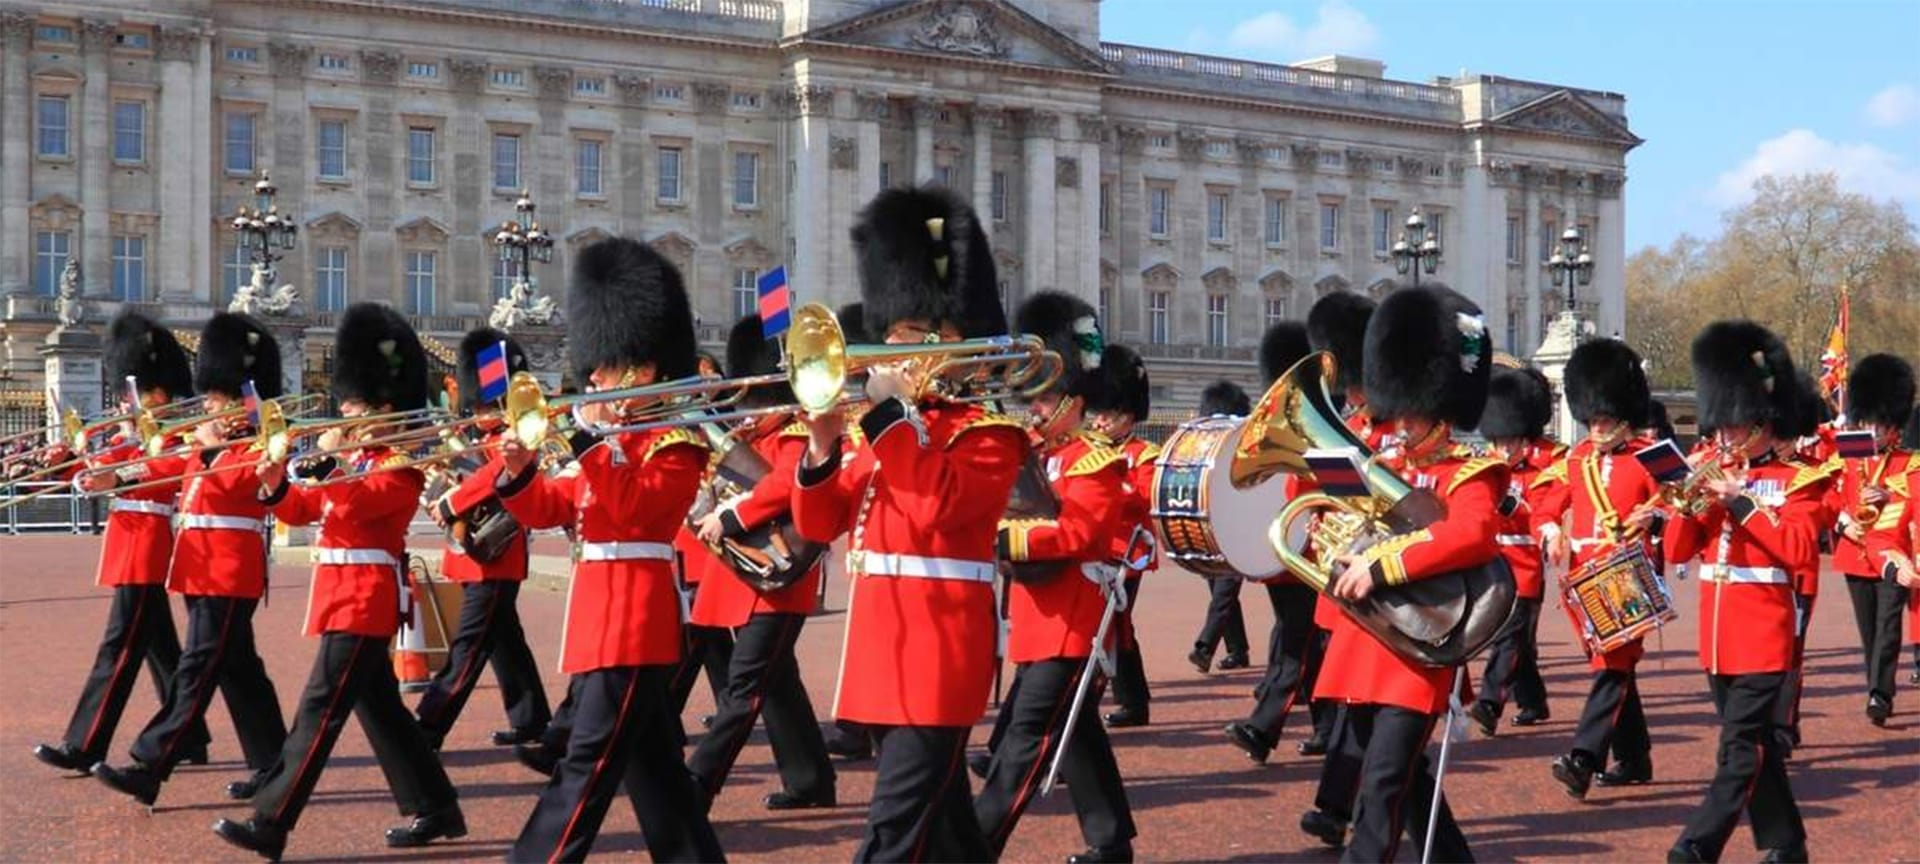 There are few more distinctive sights than the Queen's Guards, whose red uniform and tall bearskin hats are so well known that they've become a symbol of Britain itself. The Changing of the Guard is the moment, filled with pomp and ceremony, when one shift guarding Buckingham Palace relieves the other. The change includes tightly choreographed marching, with the band of the Grenadier Guards in step, adding a sense of occasion to the ceremony with their bombastic mix of horns and drumming.